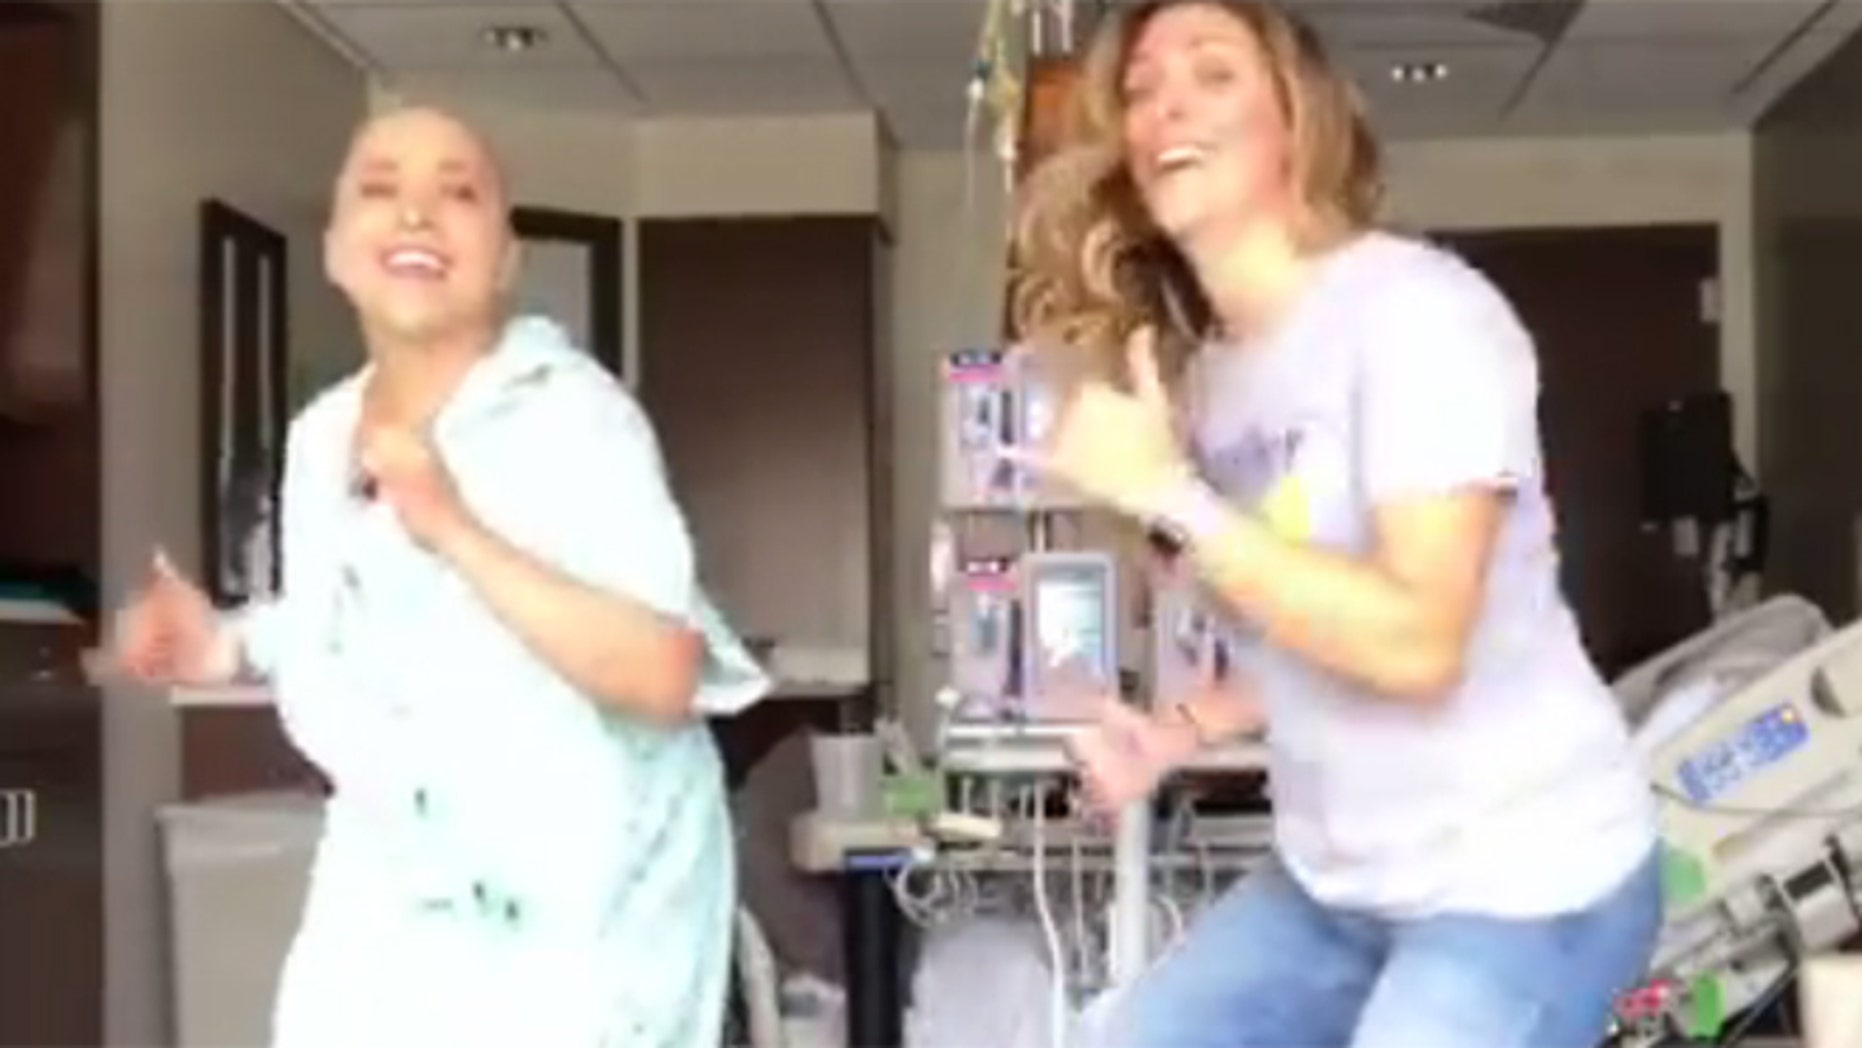 Ana-Alecia Ayala, left, and her dance partner have gone viral for their 'Juju on That Chemo' dance.